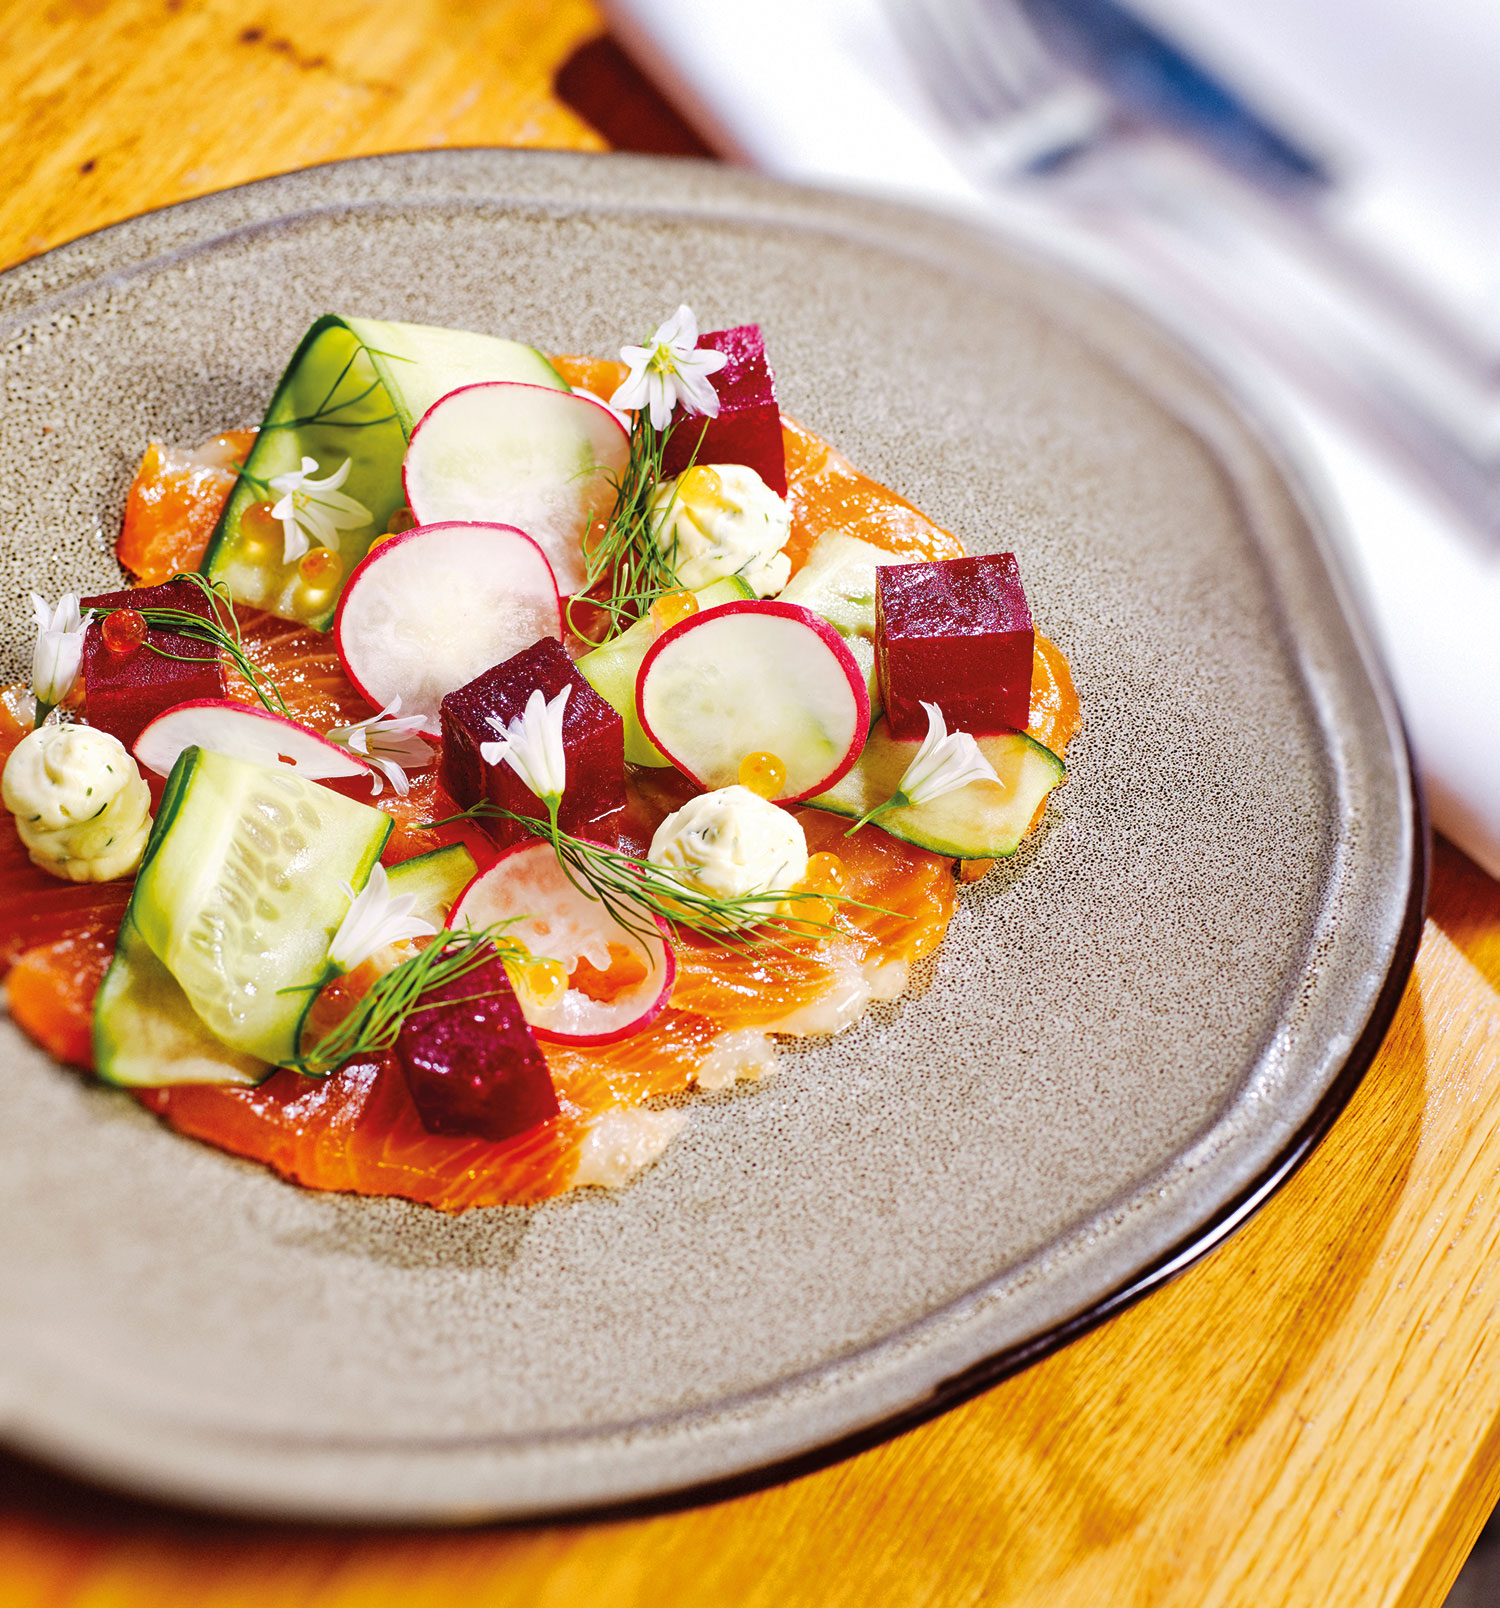 Balmy Summer Nights at Canvas Eatery